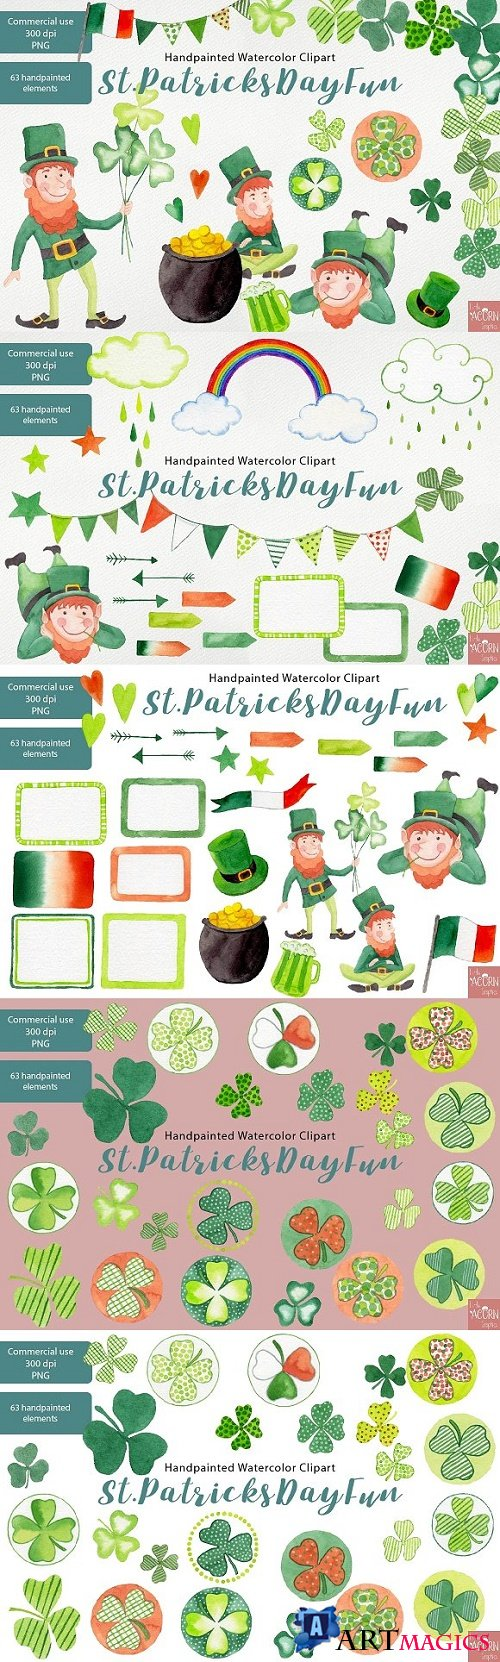 Watercolor Clipart St Patricks Day 2326711